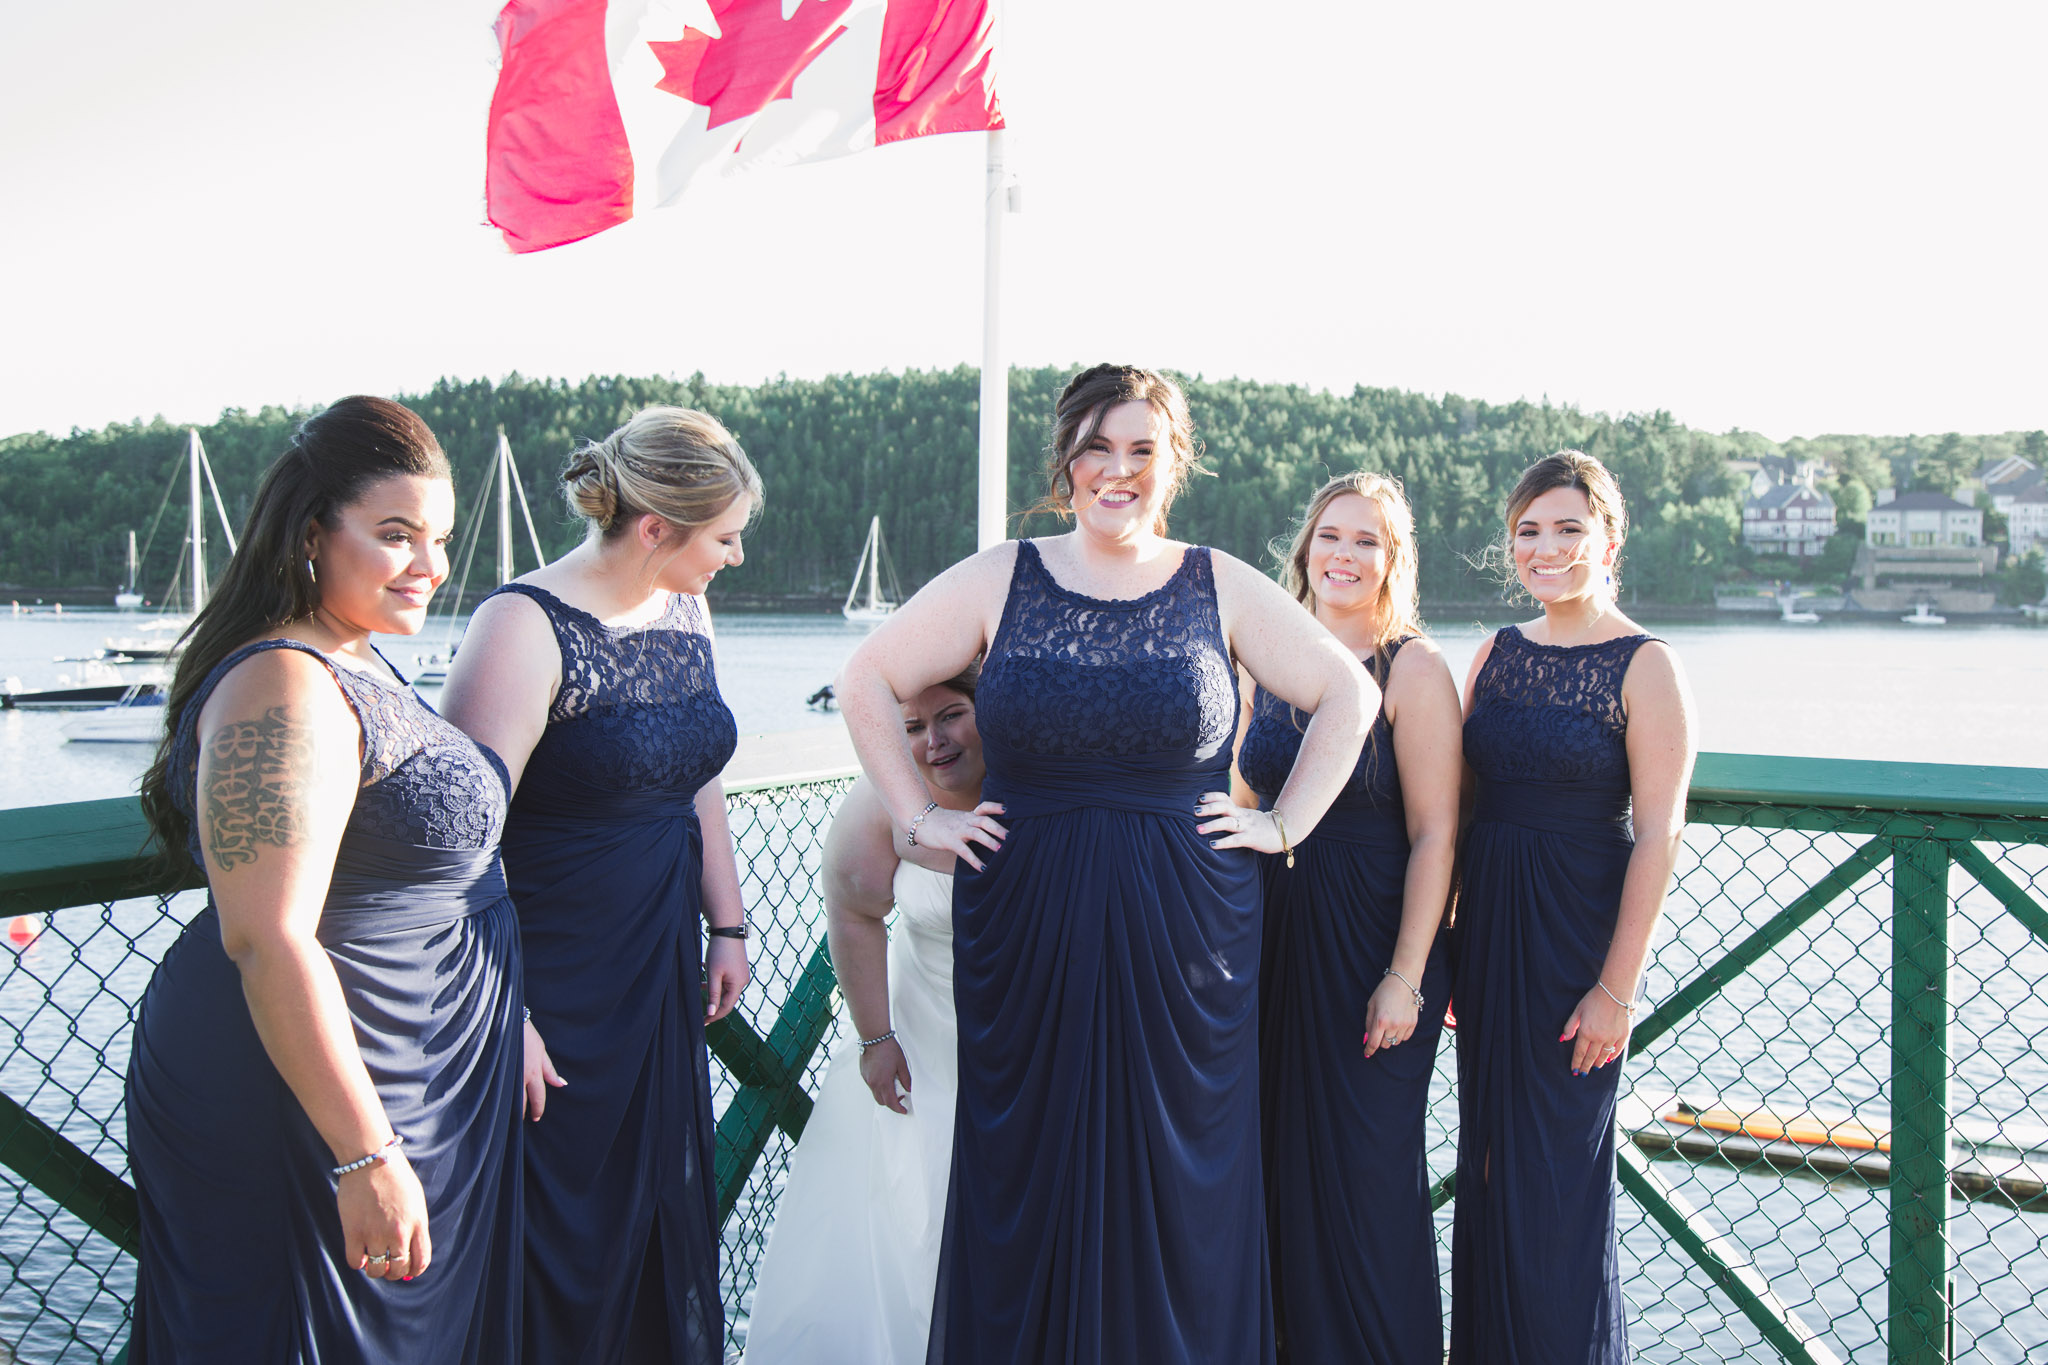 Image of bride and her bridesmaids posing